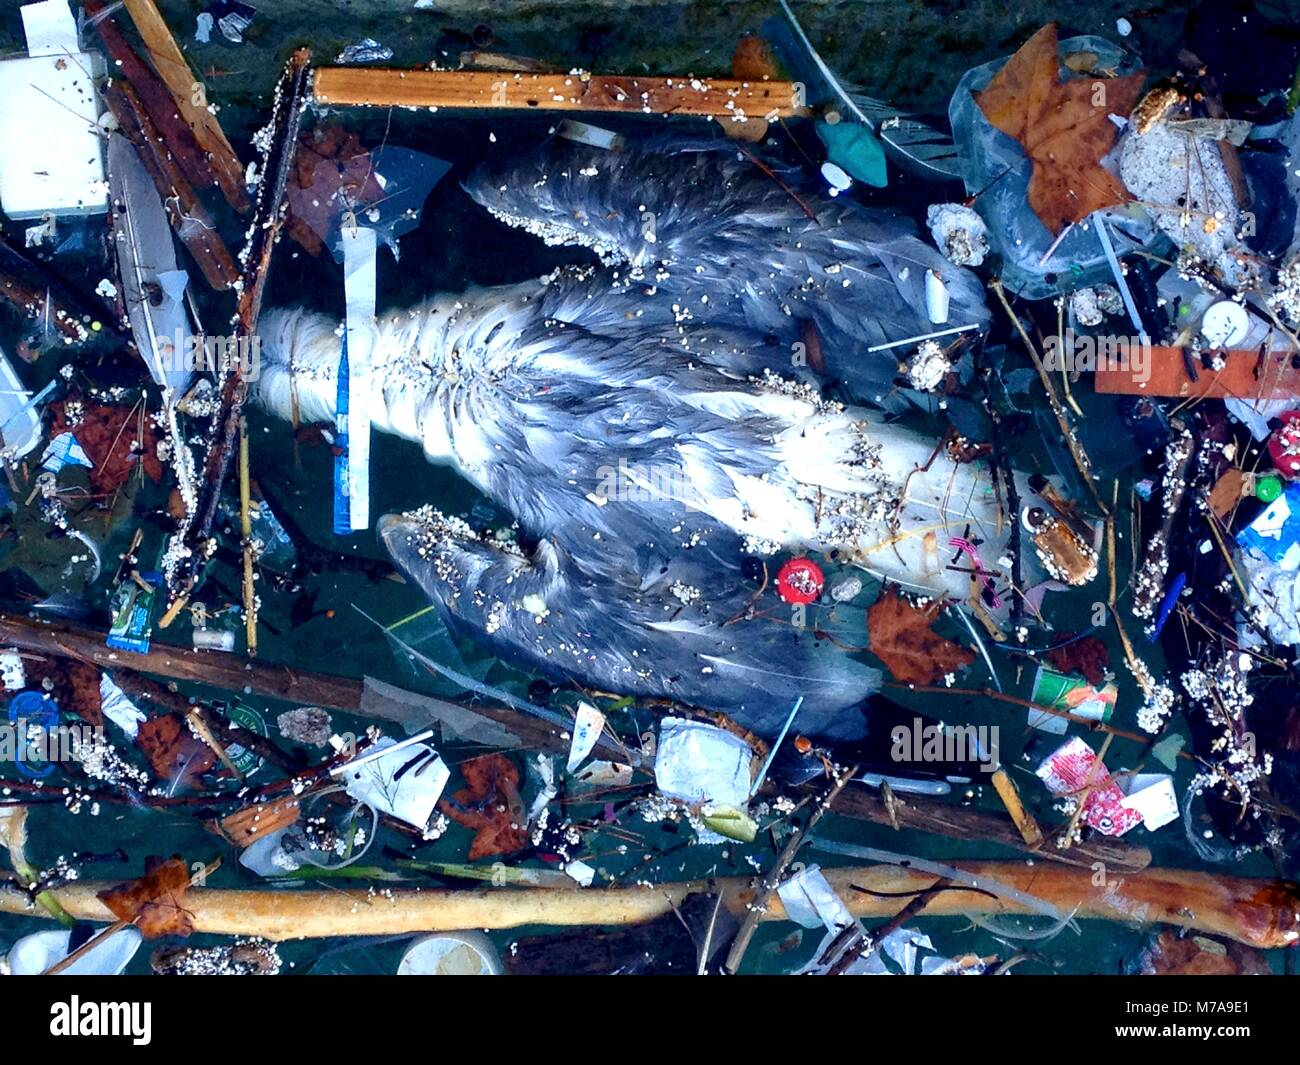 Dead bird floating in the water. Water pollution is largely caused by human activity and has had a major impact - Stock Image